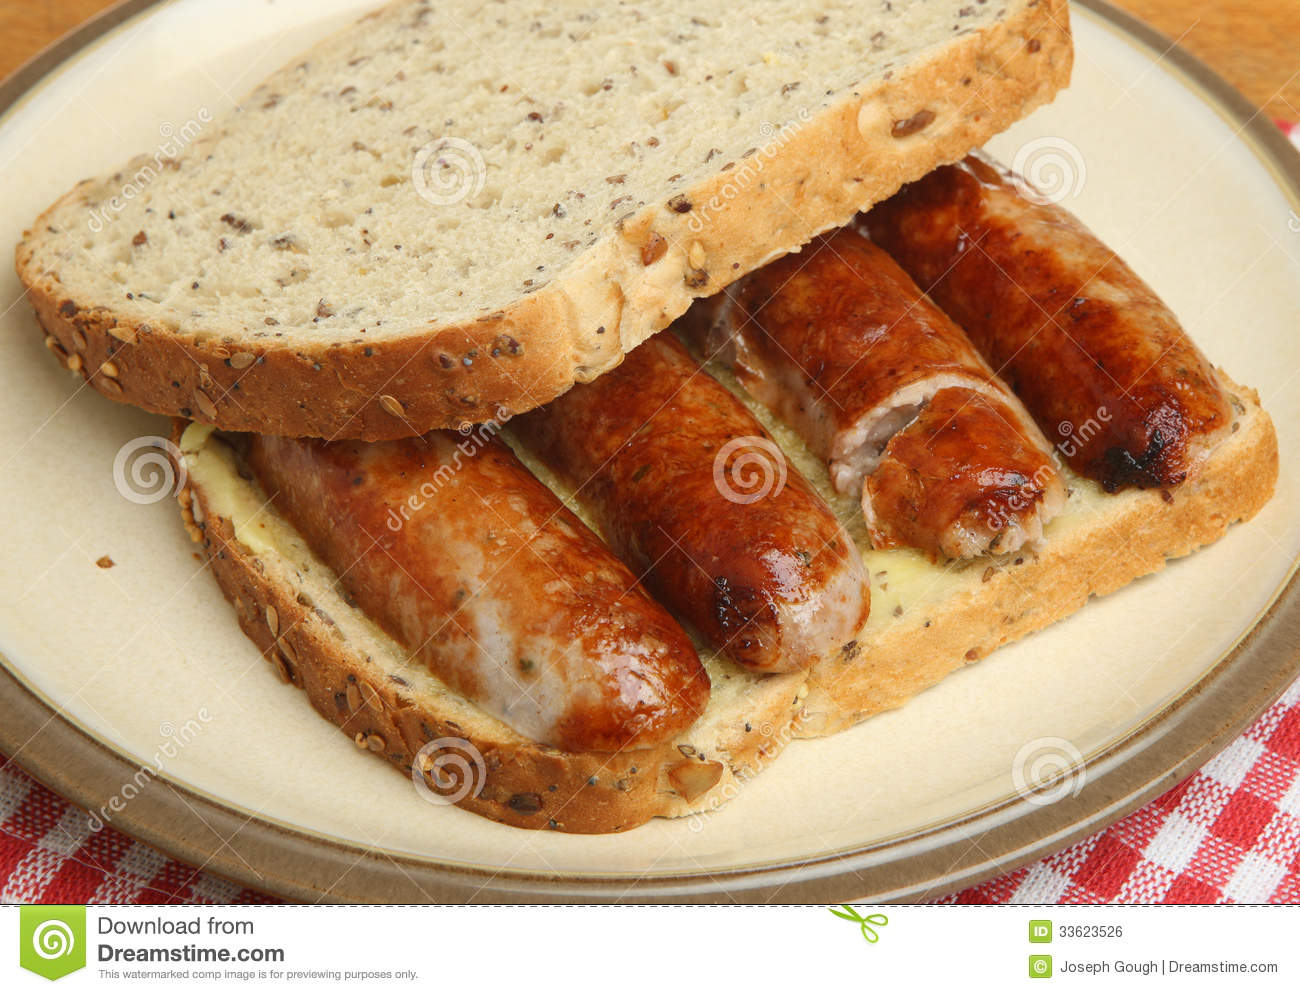 Sausage Sandwich Royalty Free Stock Image - Image: 33623526